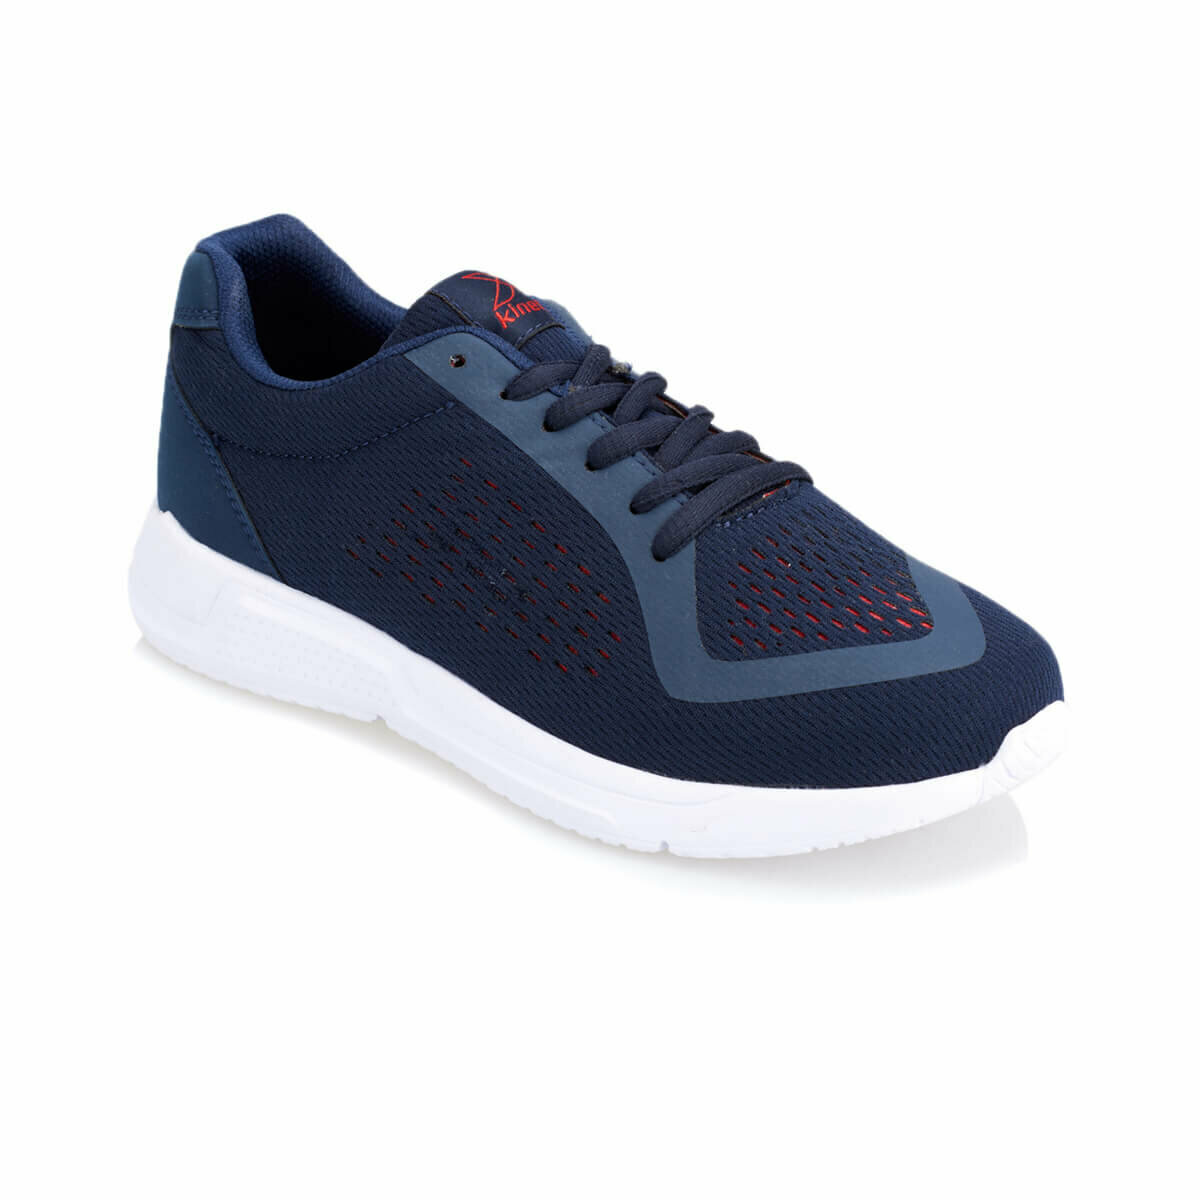 FLO REX W Navy Blue Women 'S Sneaker Shoes KINETIX